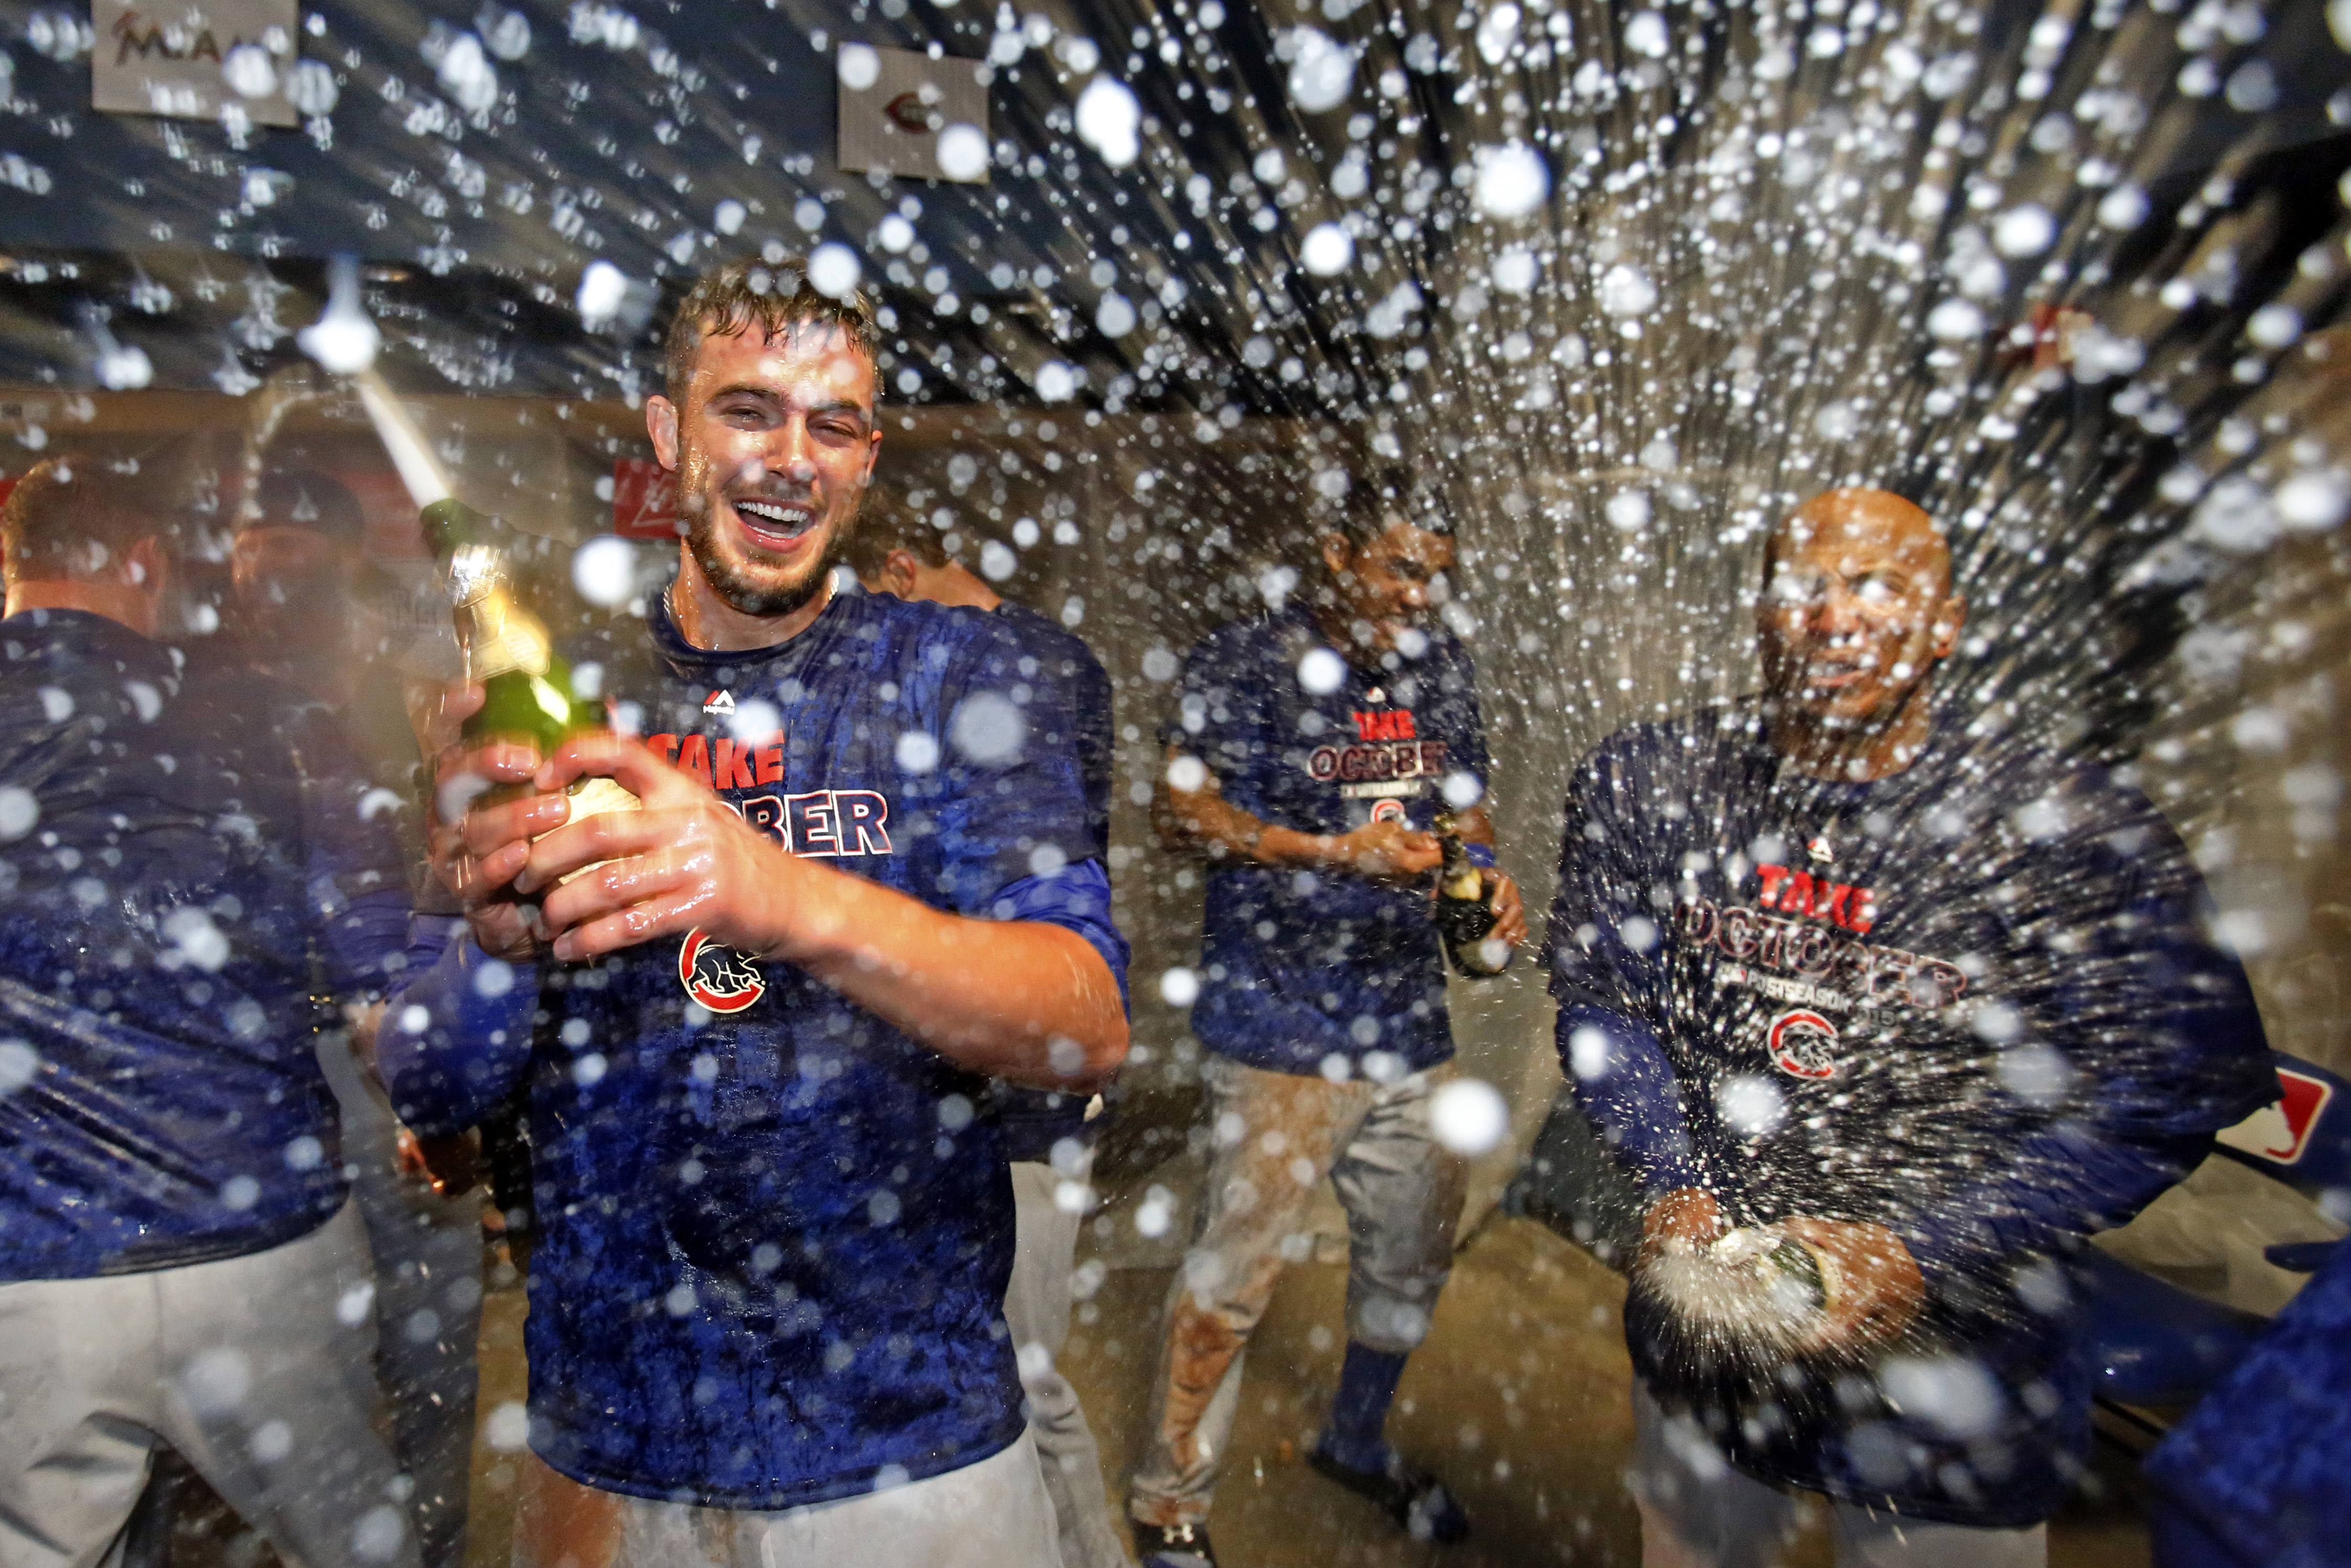 Chicago Cubs' Kris Bryant, left, celebrates with teammates in their locker room after a 4-0 win over the Pittsburgh Pirates in the National League wild card baseball game Wednesday, Oct. 7, 2015, in Pittsburgh. The Cubs advance to face the St. Louis Cardi